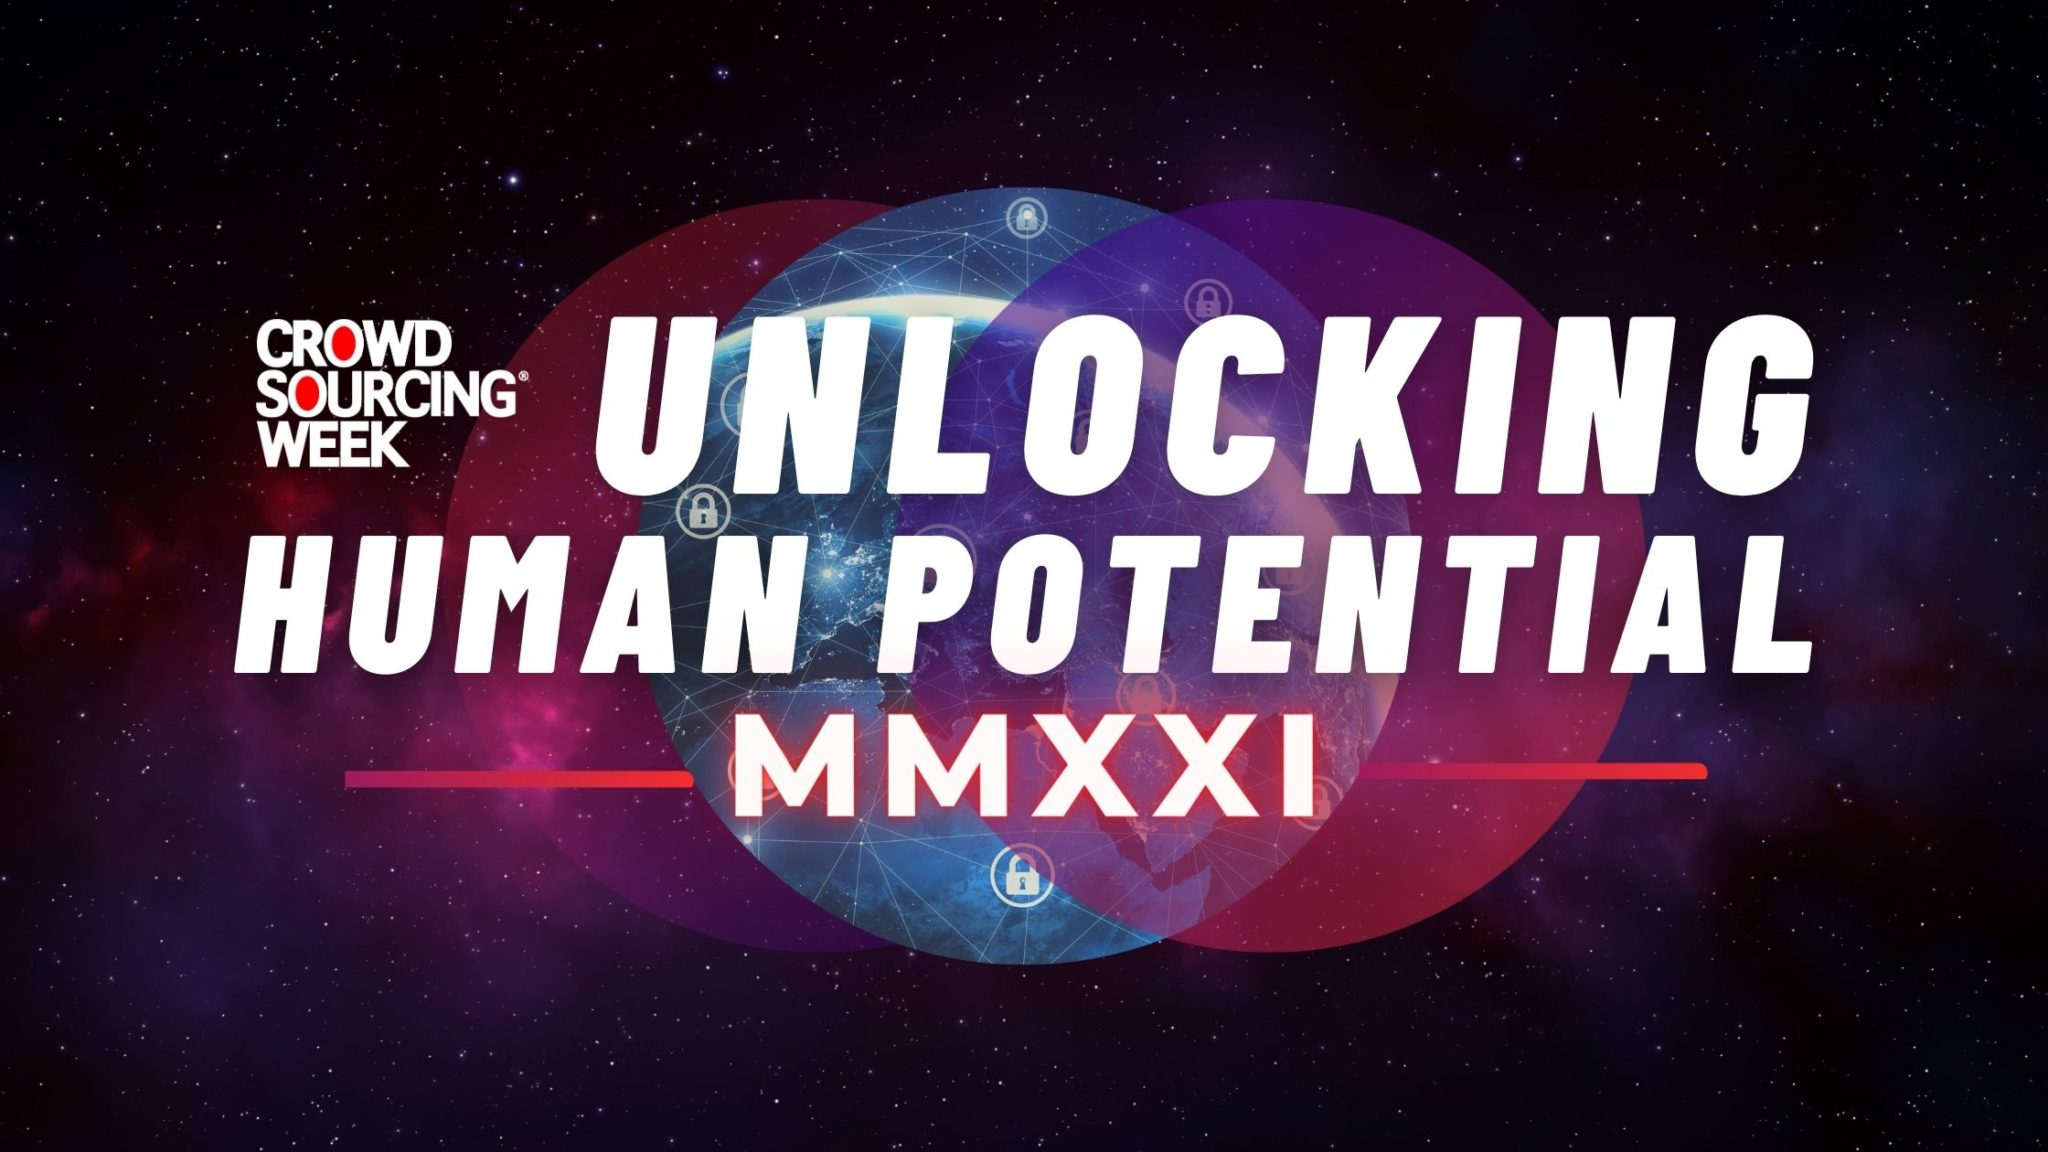 Unlocking Human Potential Through the Power of the Crowd